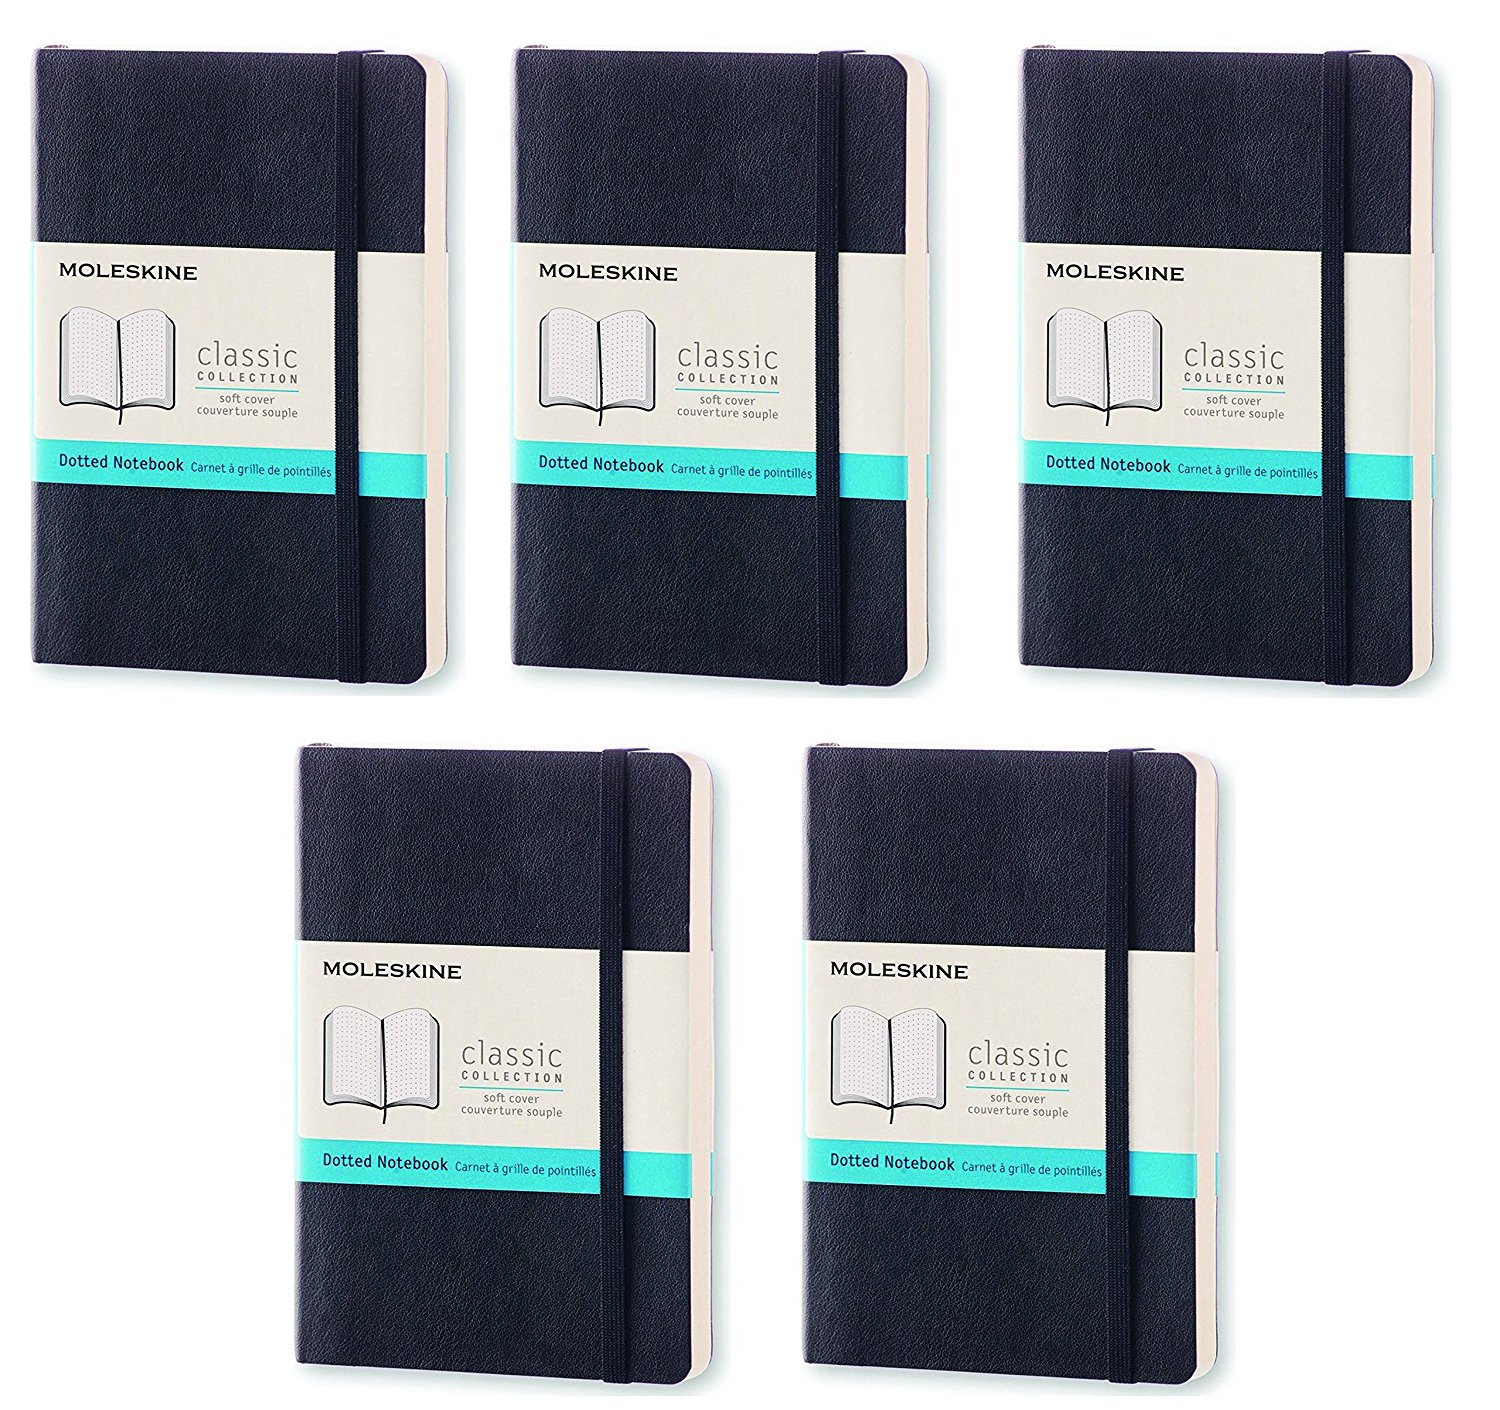 Pack of 5 Moleskine Classic Colored Notebook, Pocket, Dotted, Black, Soft Cover (3.5 x 5.5)